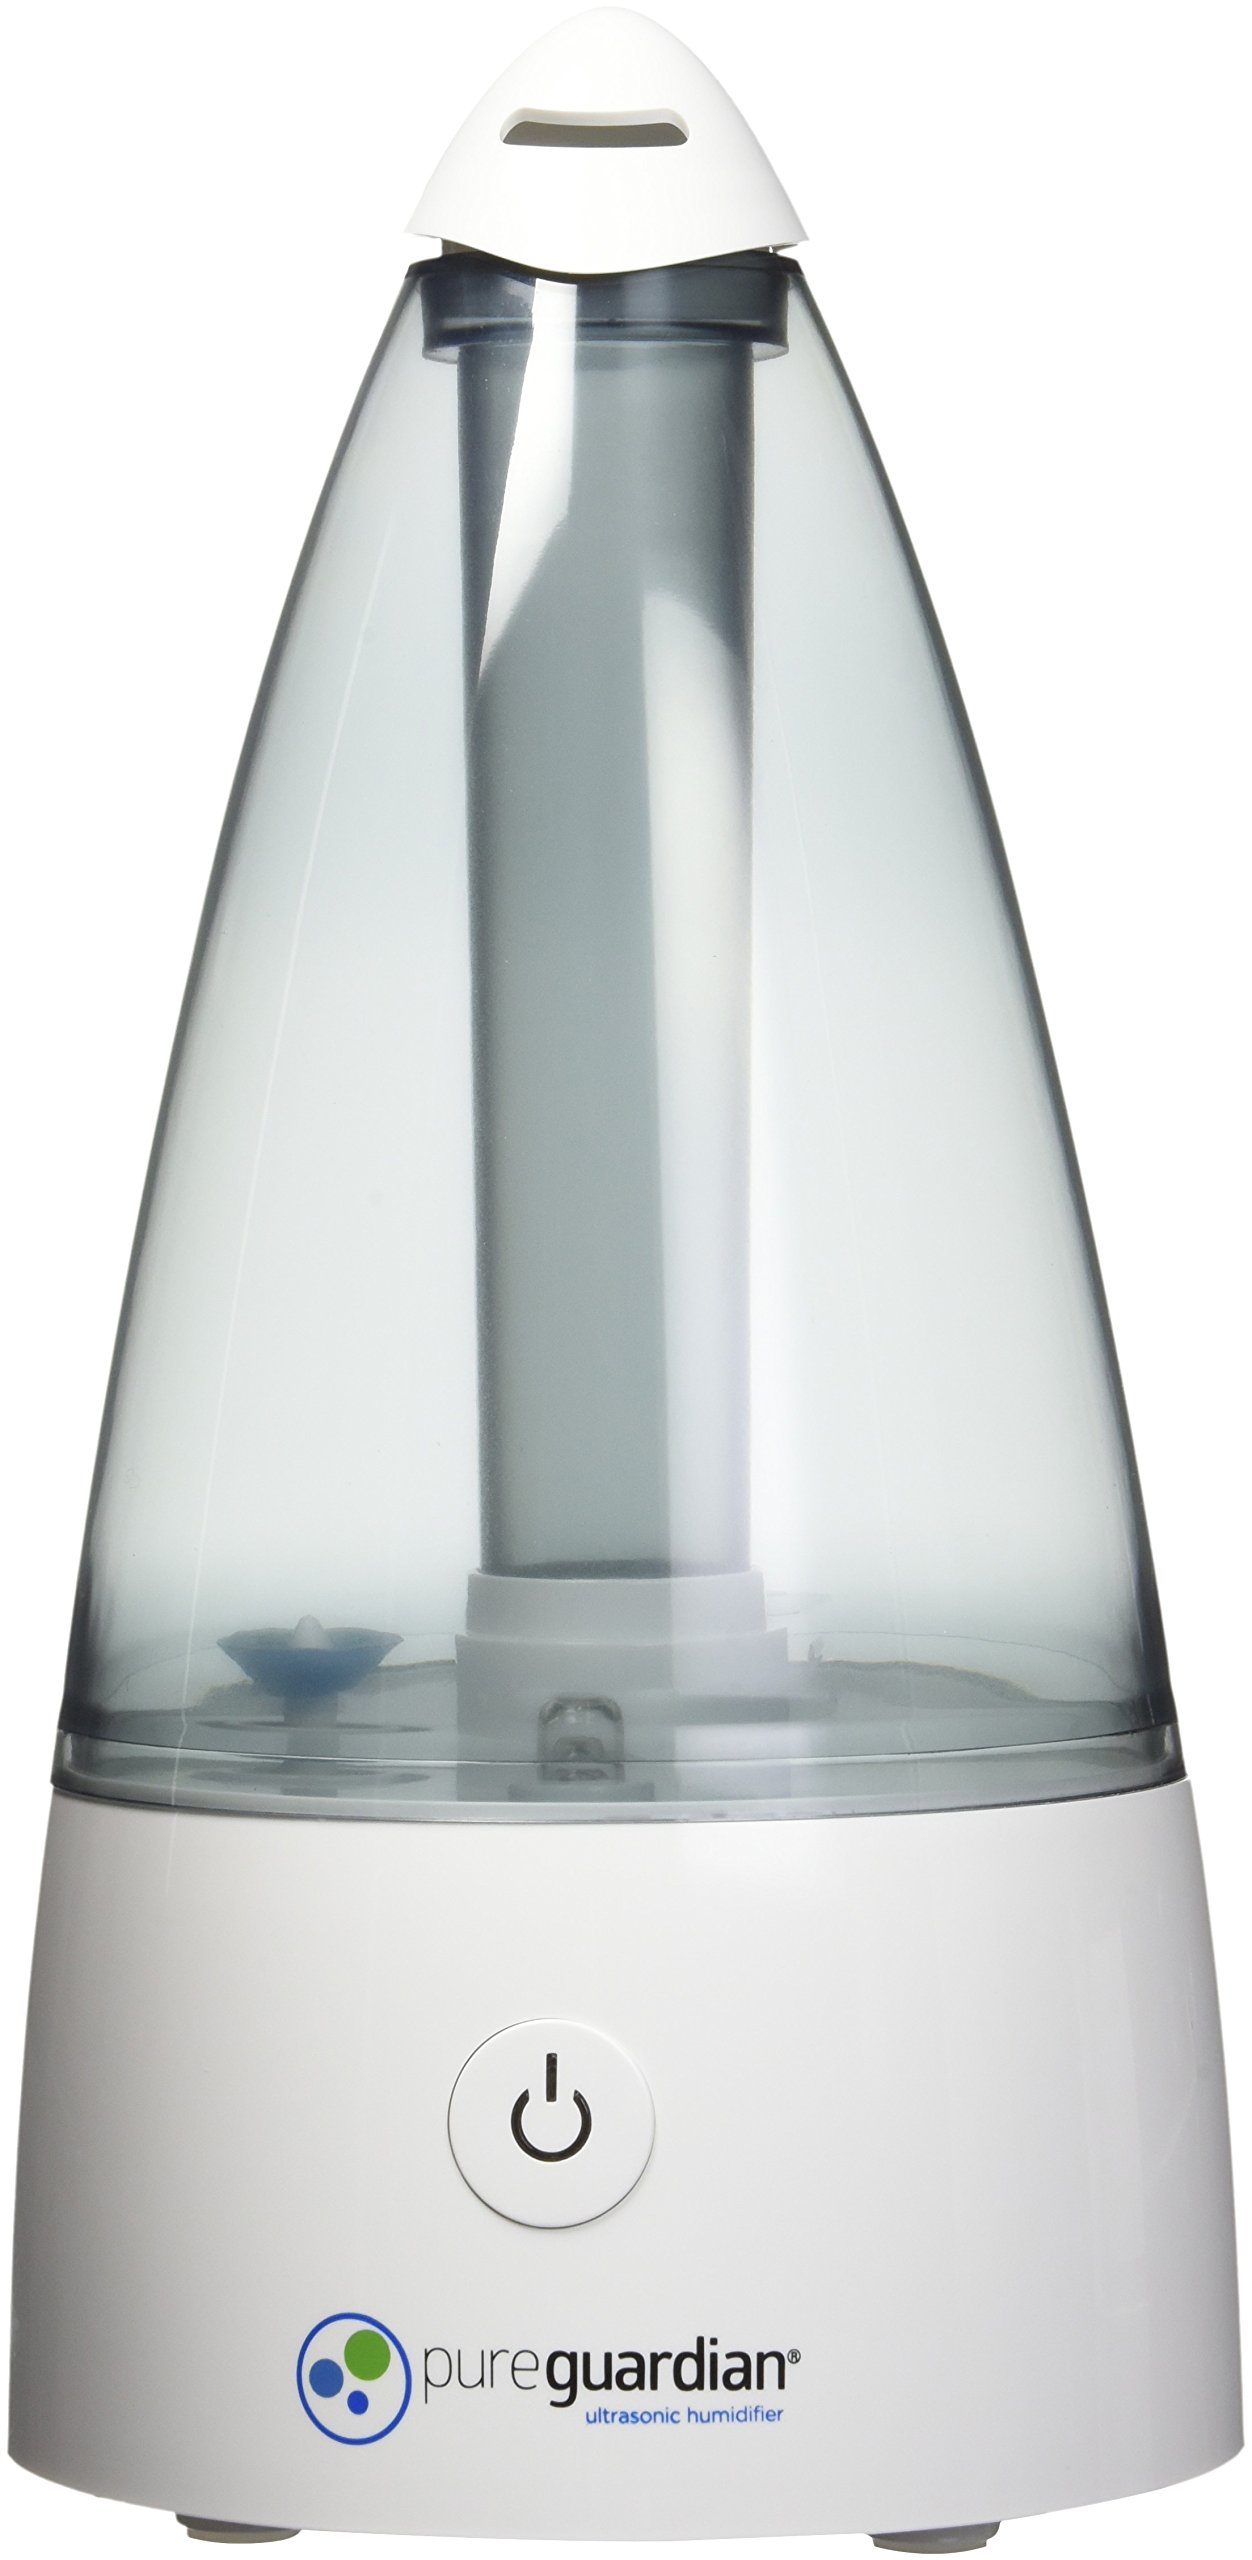 PureGuardian 3L Output per Day Ultrasonic Cool Mist Humidifier, Baby Room, Nursery Humidifier, Portable Humidifier, Travel Humidifier, Small Humidifier, Desk Humidifier, Pure Guardian H925S